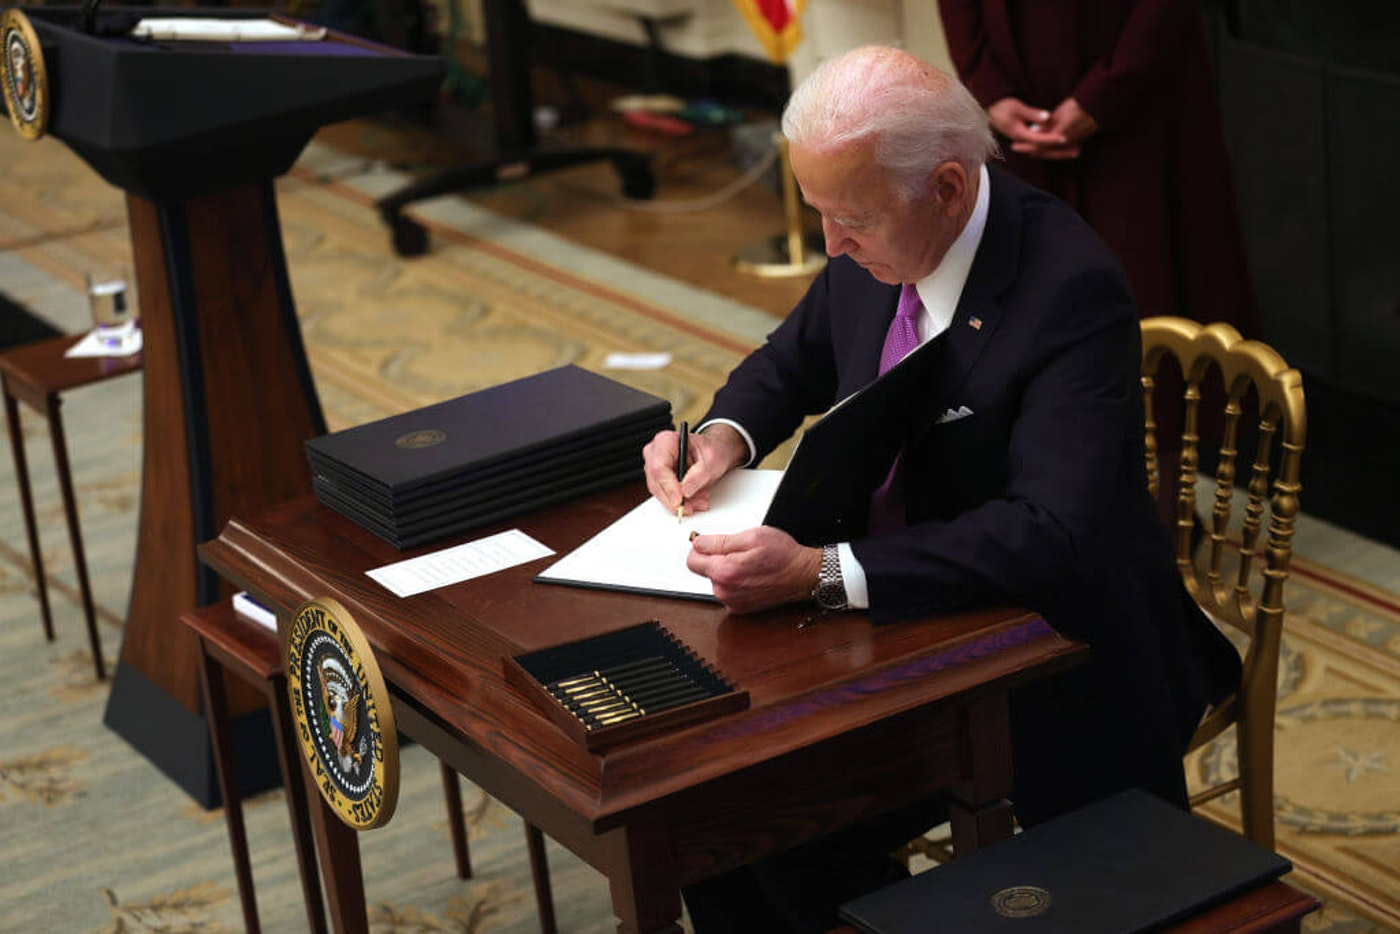 U.S. President Joe Biden signs an executive order during an event in the State Dining Room of the White House January 21, 2021 in Washington, DC. President Biden delivered remarks on his administration's COVID-19 response, and signed executive orders and other presidential actions. (Photo by Alex Wong/Getty Images)